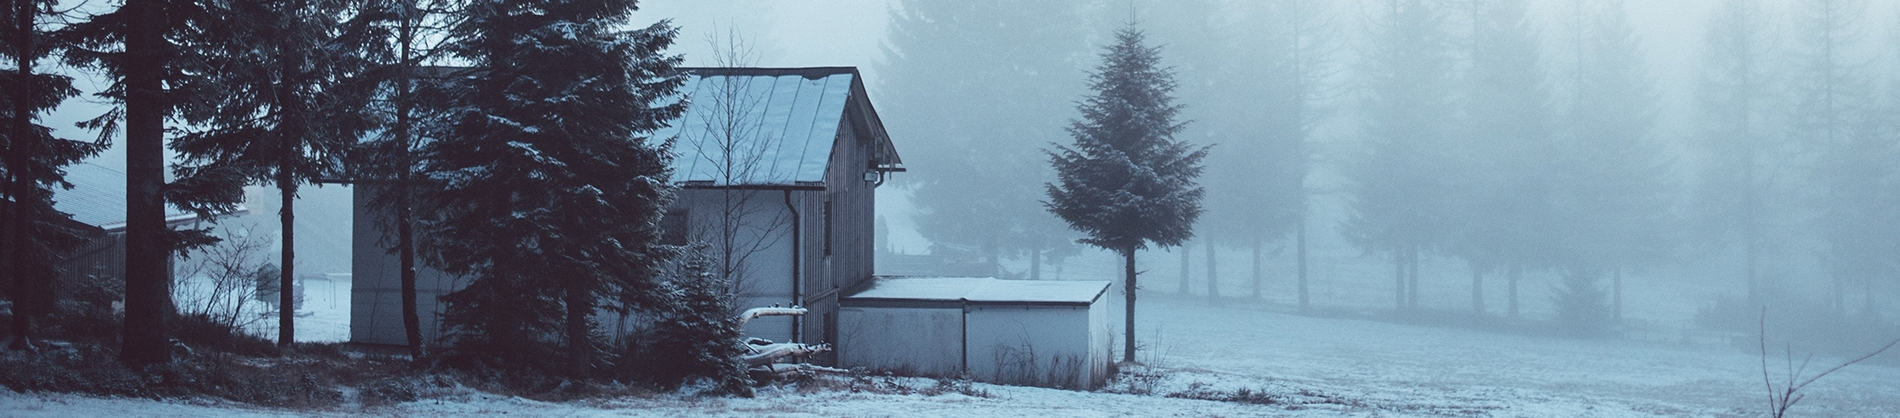 A small farm house covered in snow surrounded by forest